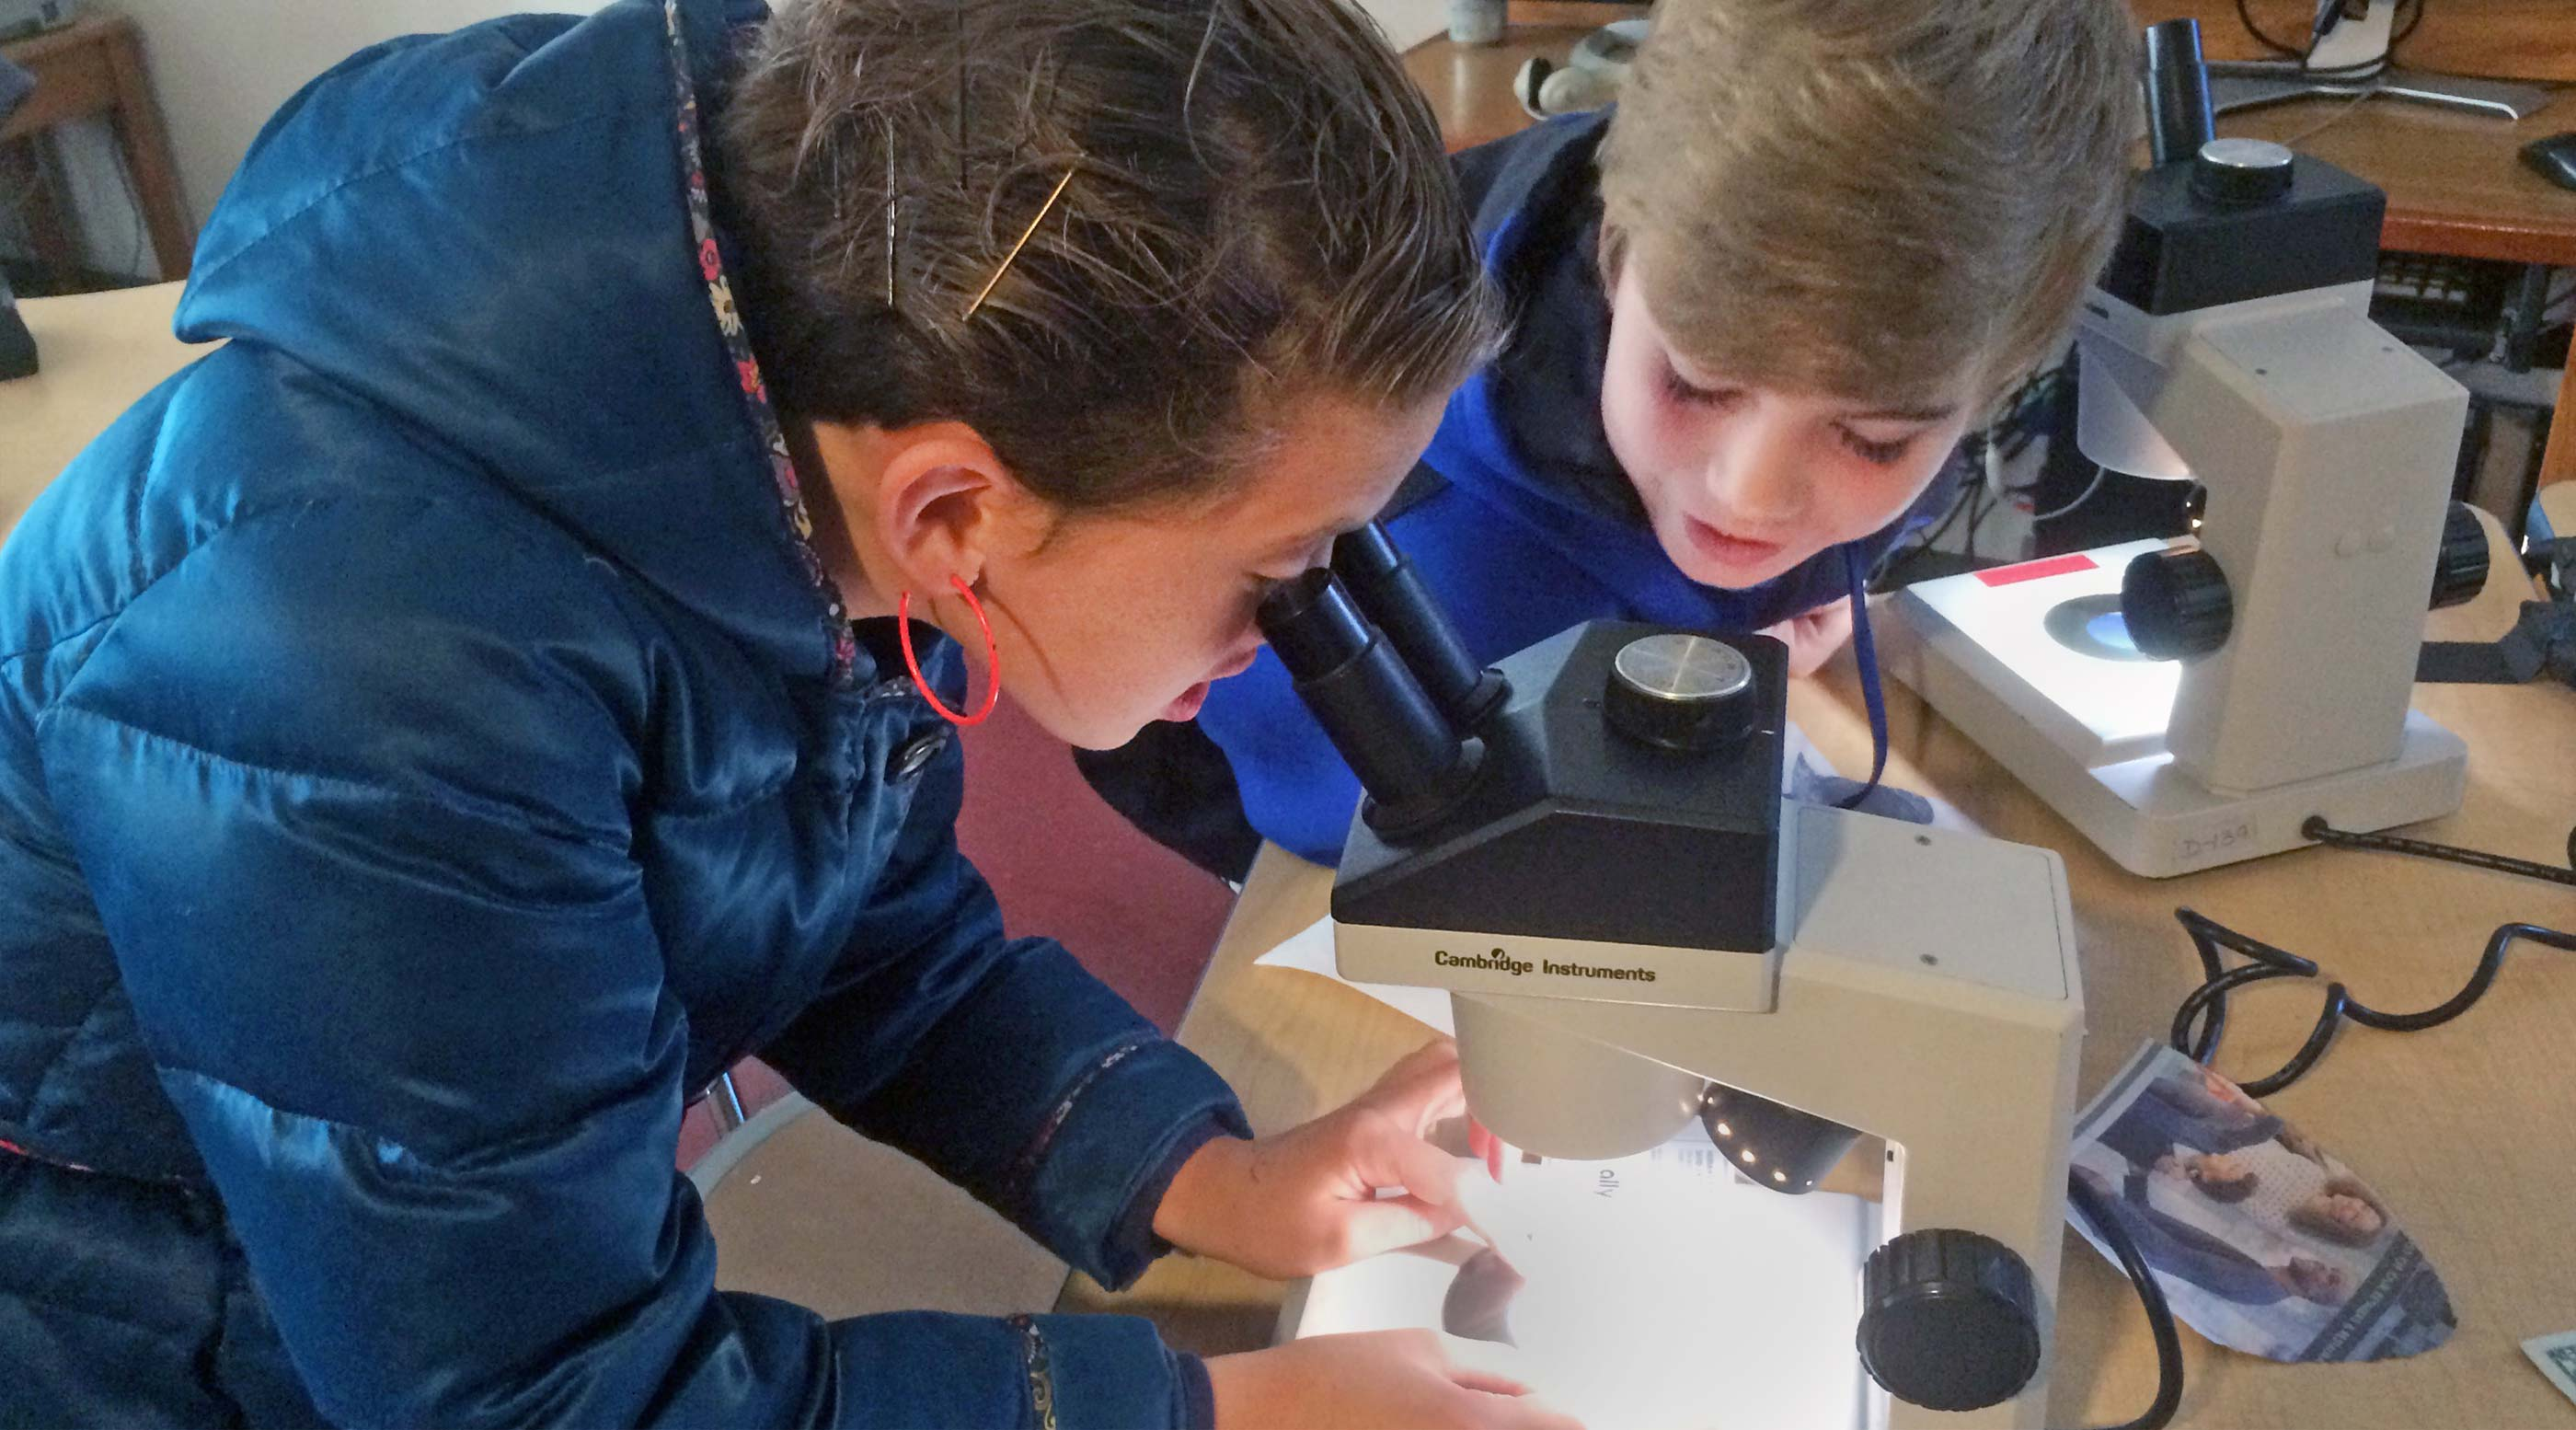 Older students view images in a microscope